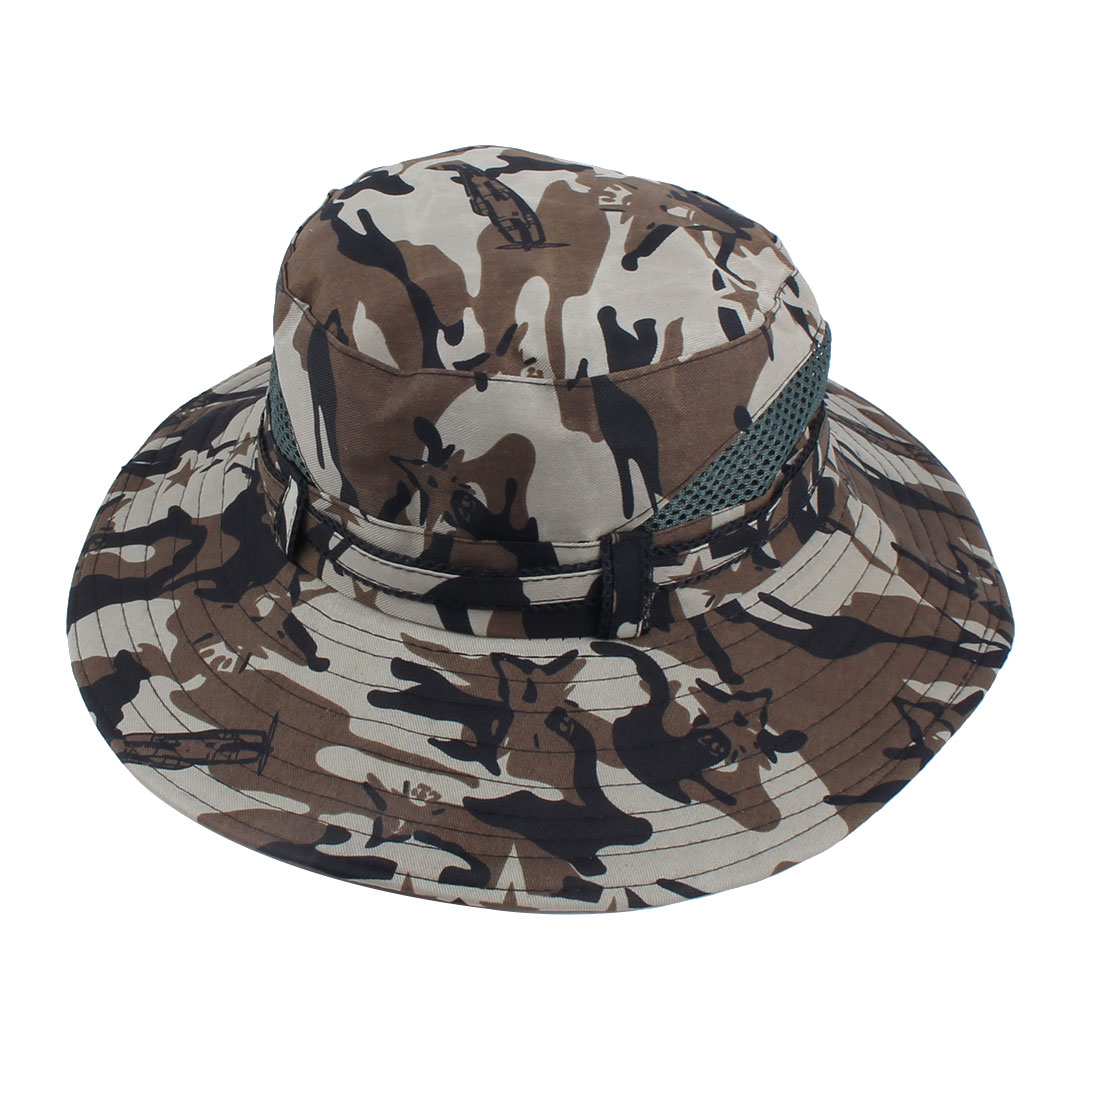 Fisherman Outdoor Sports Hiking Mountaineering Adjustable Strap Bucket Summer Cap Fishing Hat Camouflage